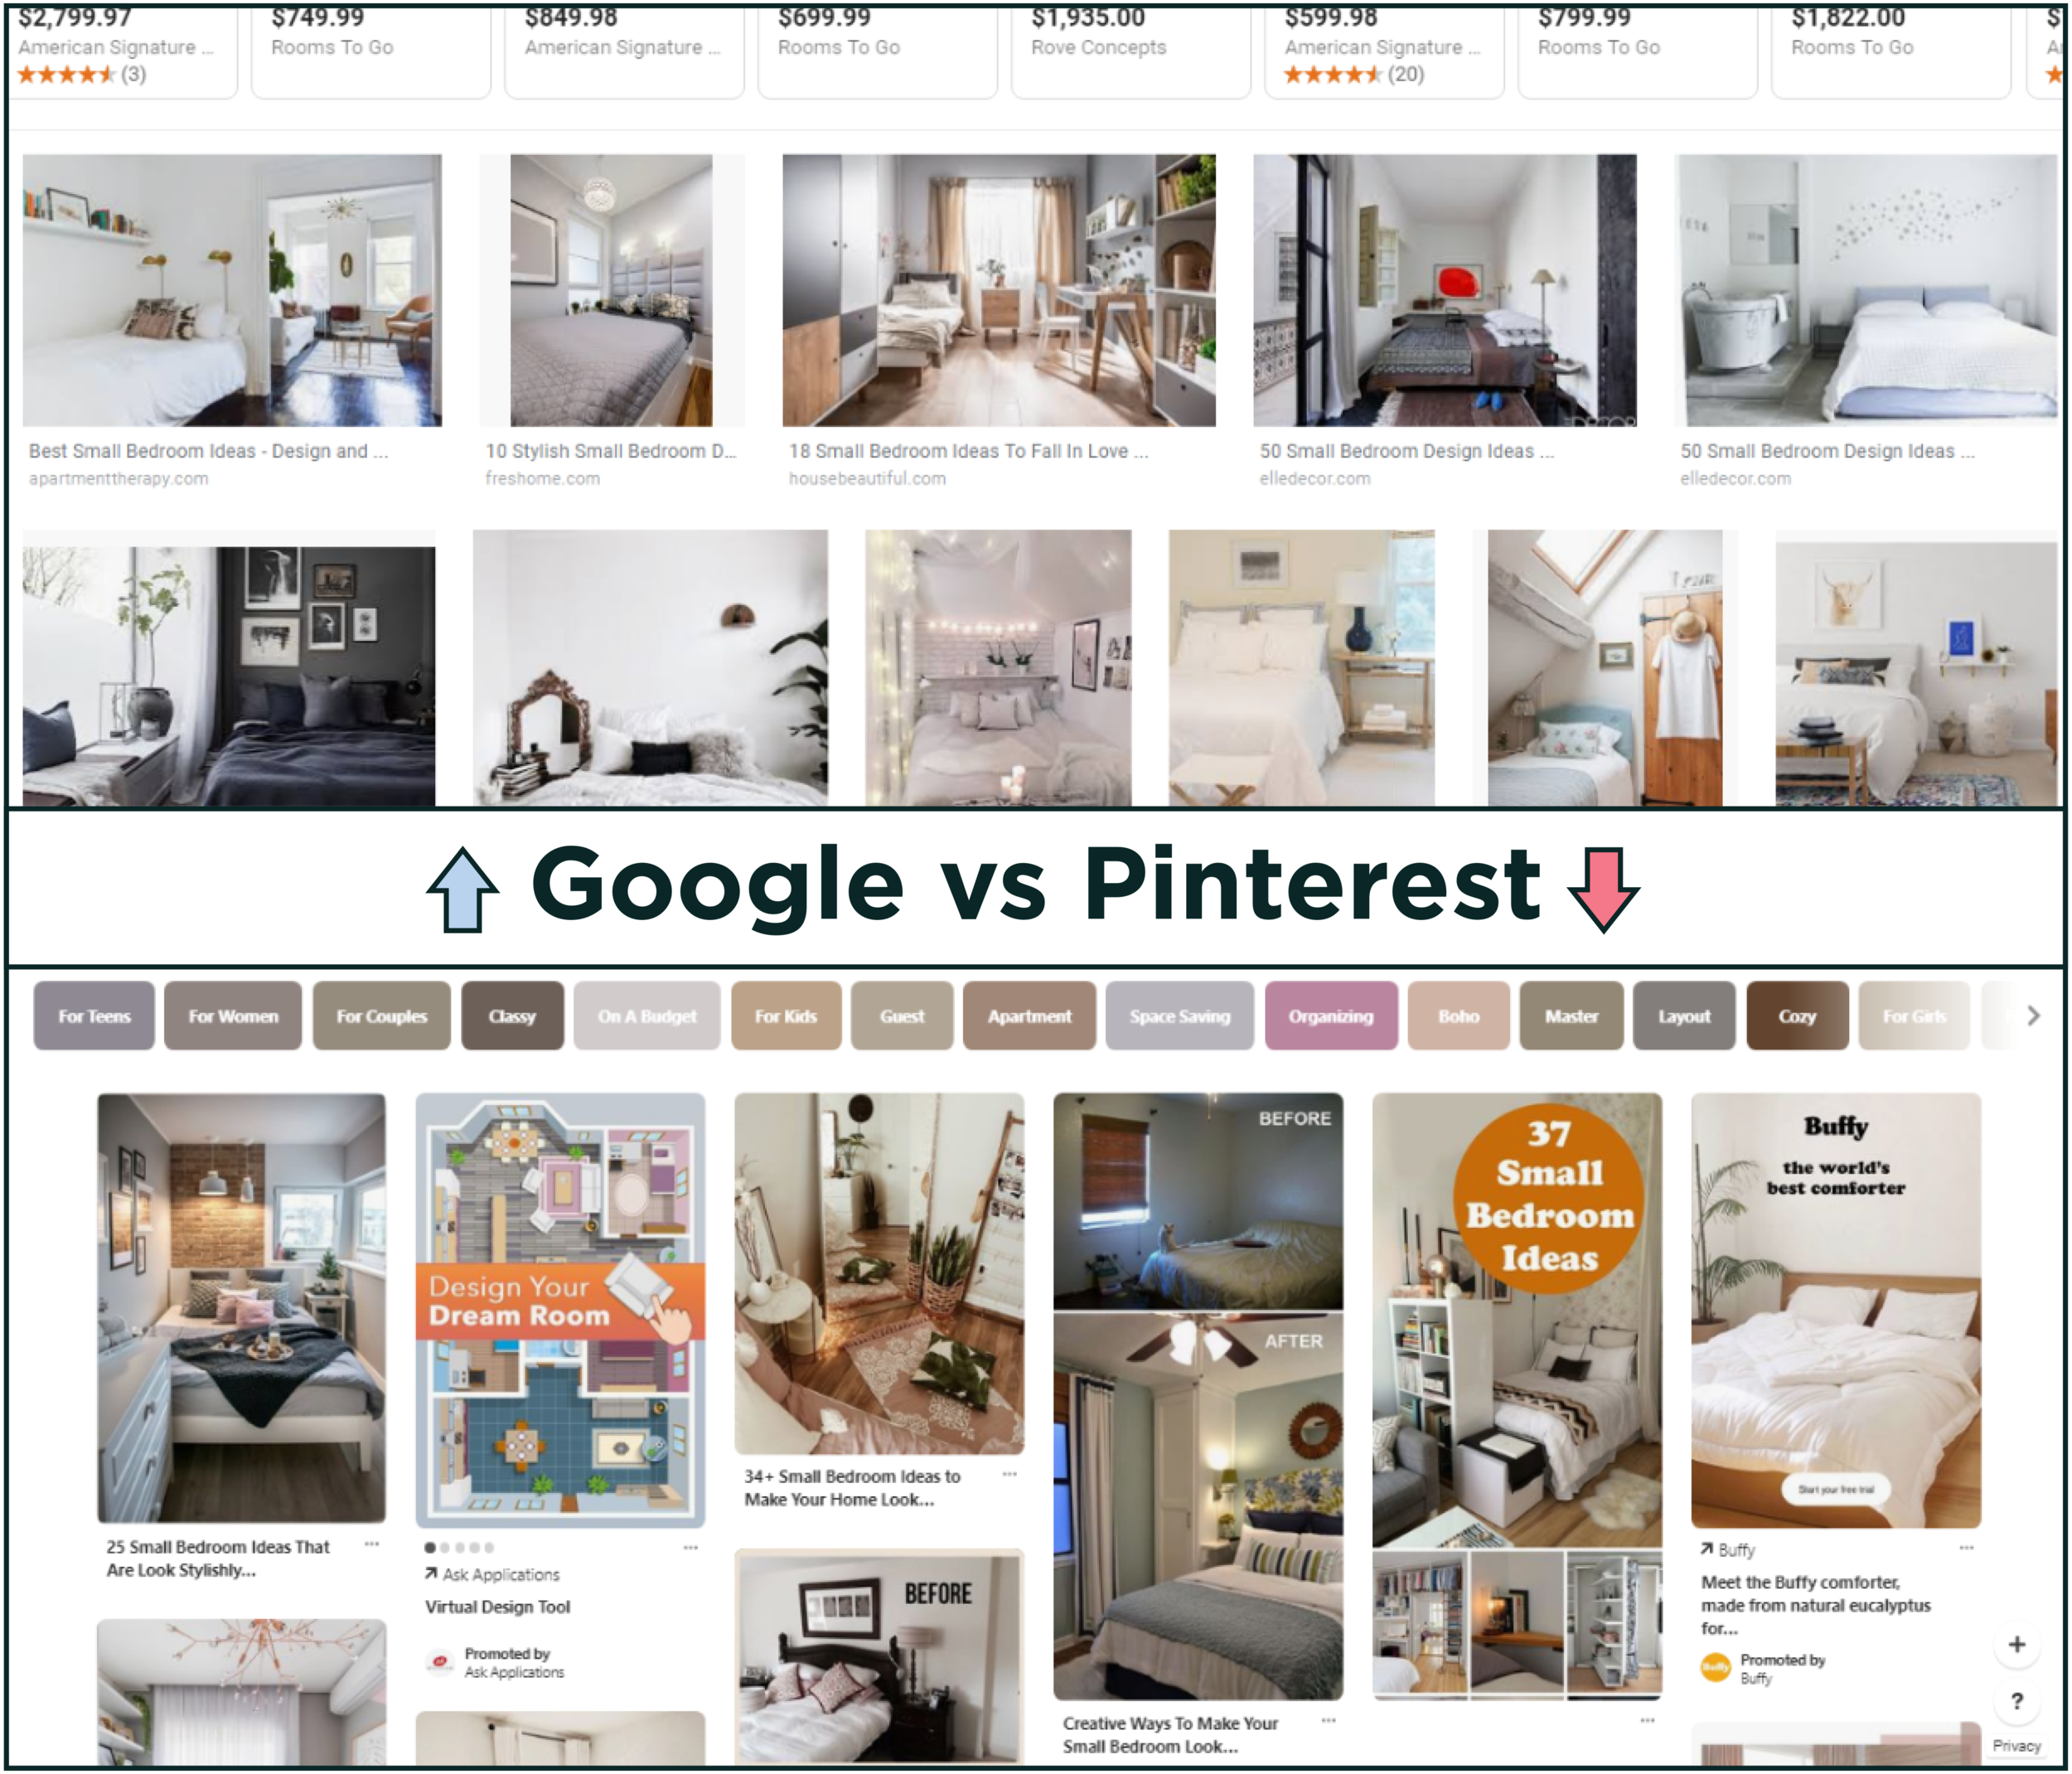 screenshots comparing small bedroom ideas SERPS on Google and Pinterest